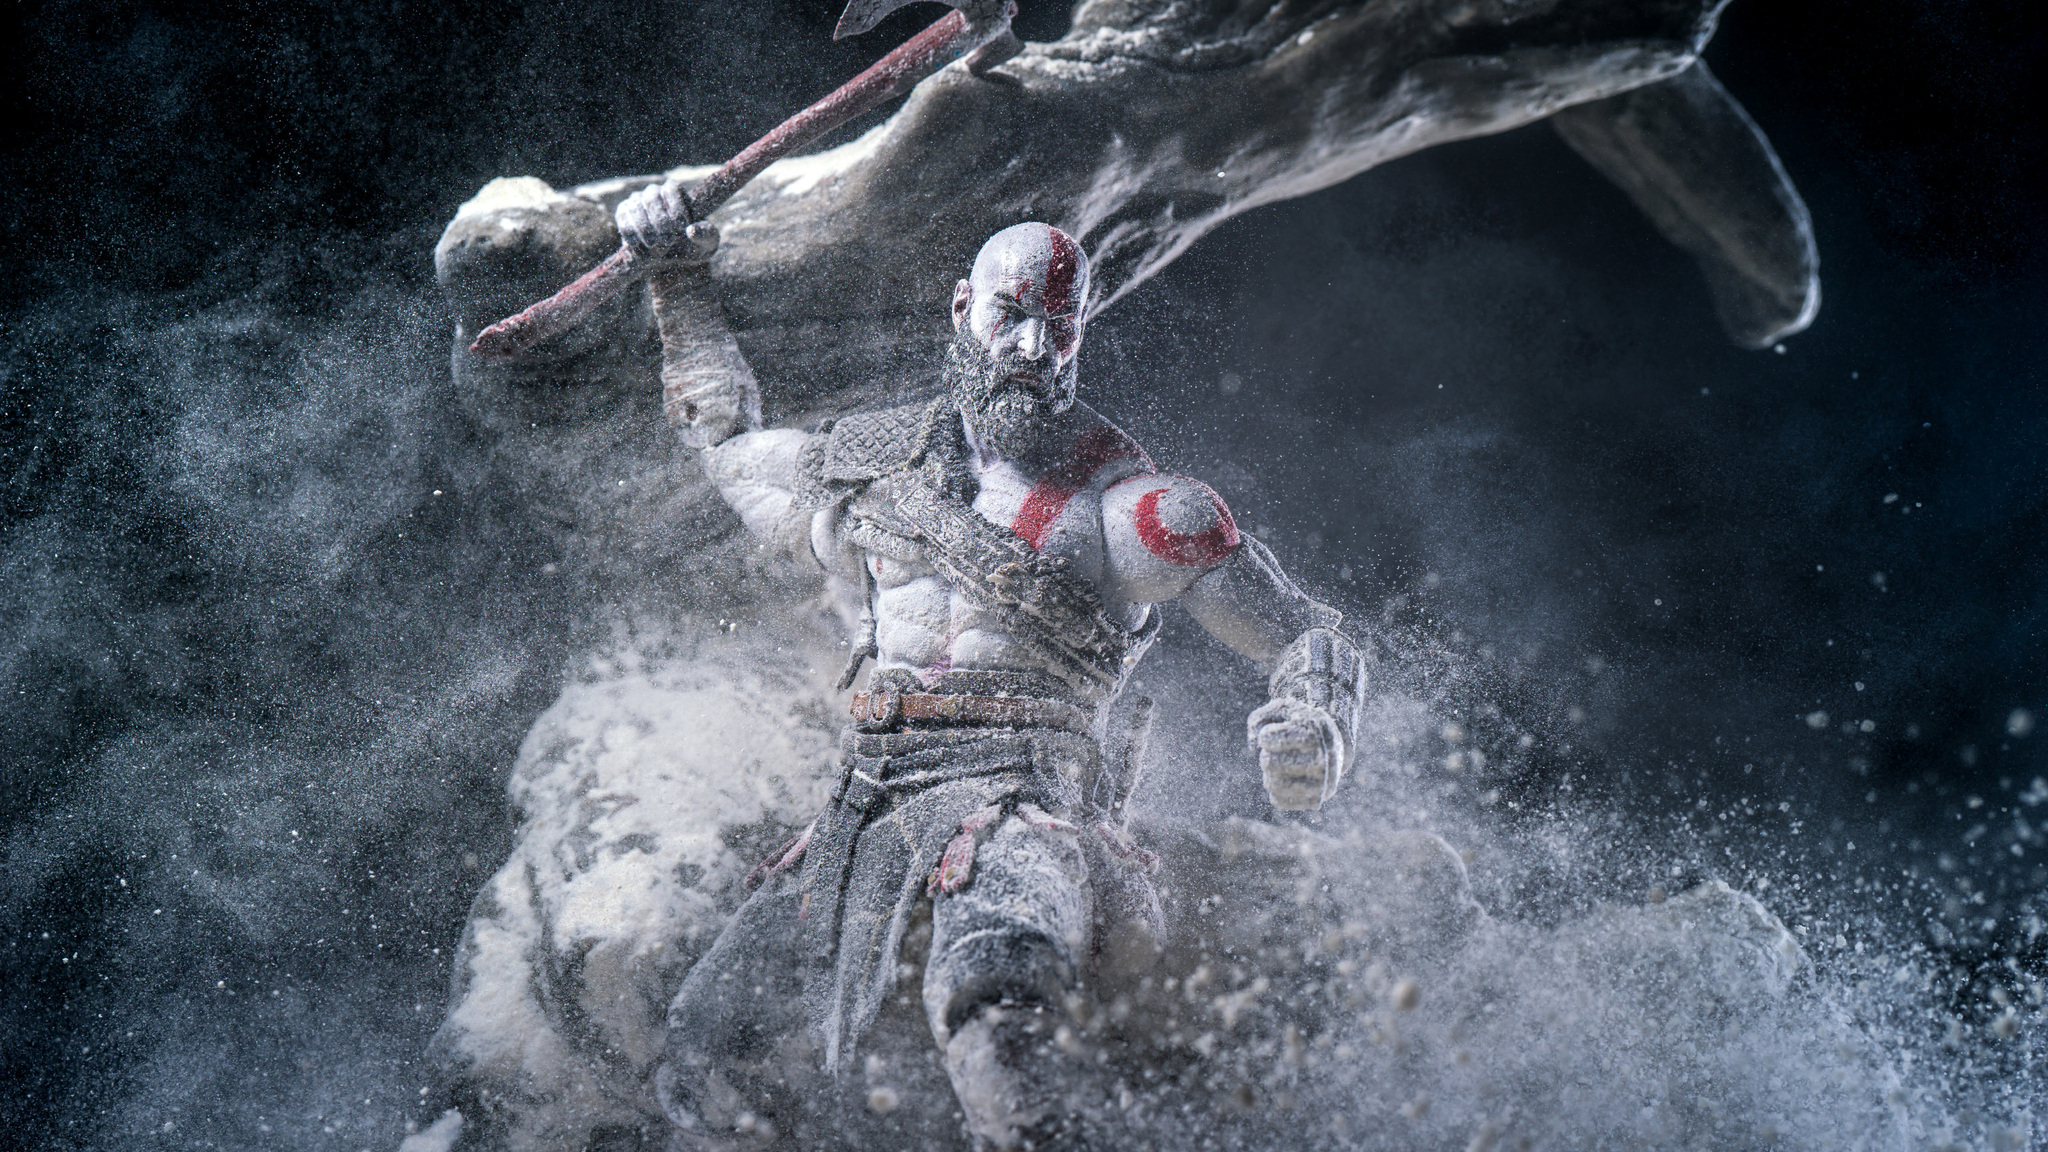 kratos-god-of-war-video-game-6y.jpg